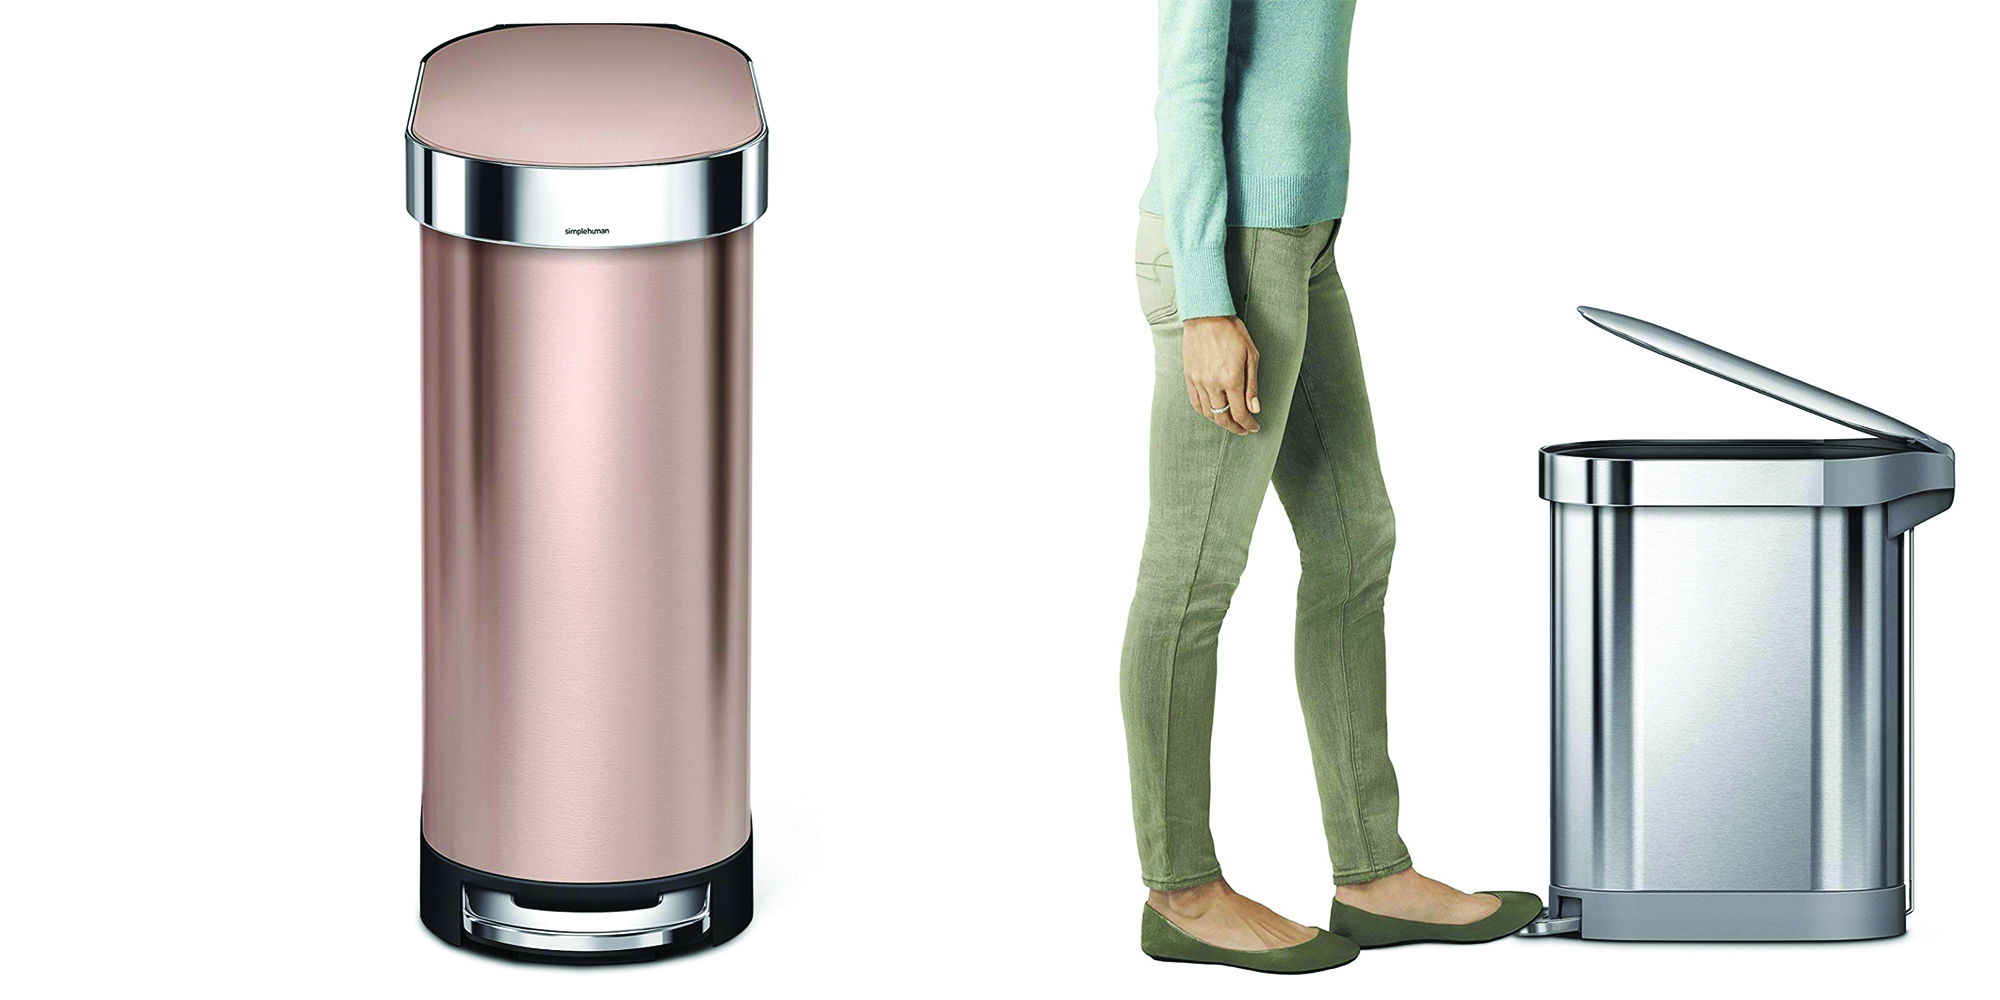 Rose Gold Trash Can The Simplehuman 45l Slim Step Trash Can Is On Sale From